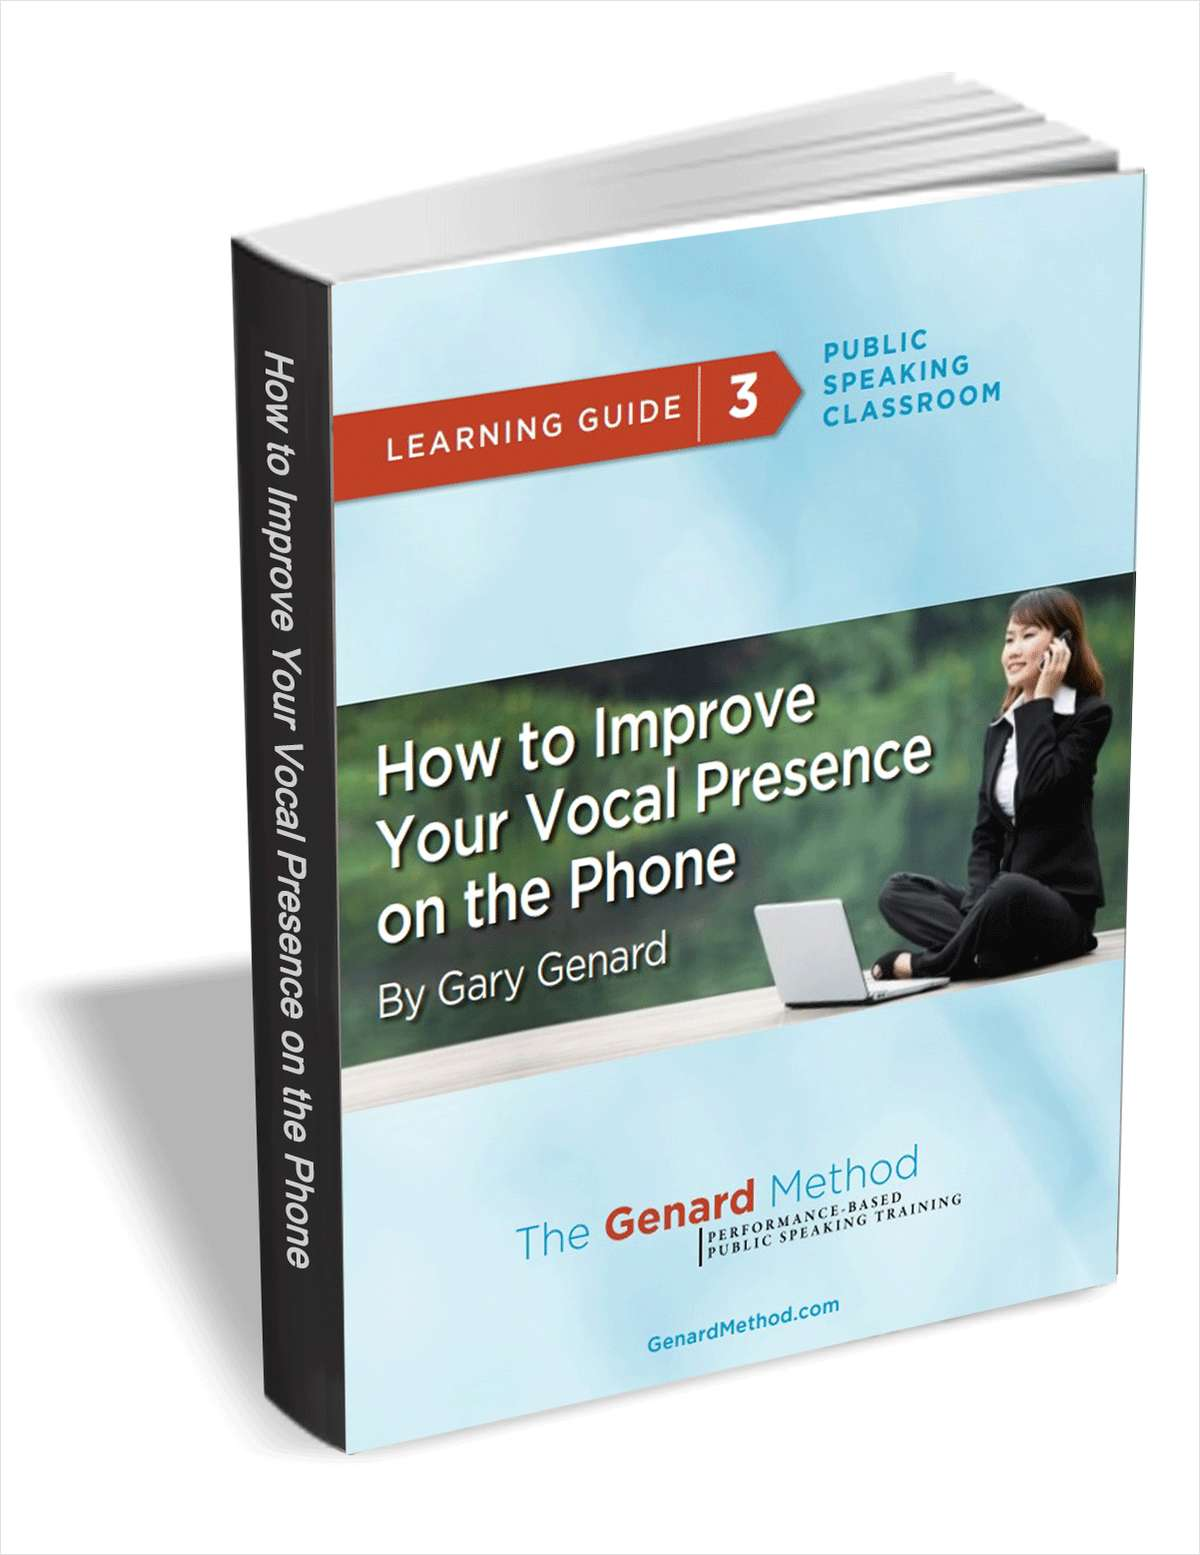 How to Improve Your Vocal Presence on the Phone